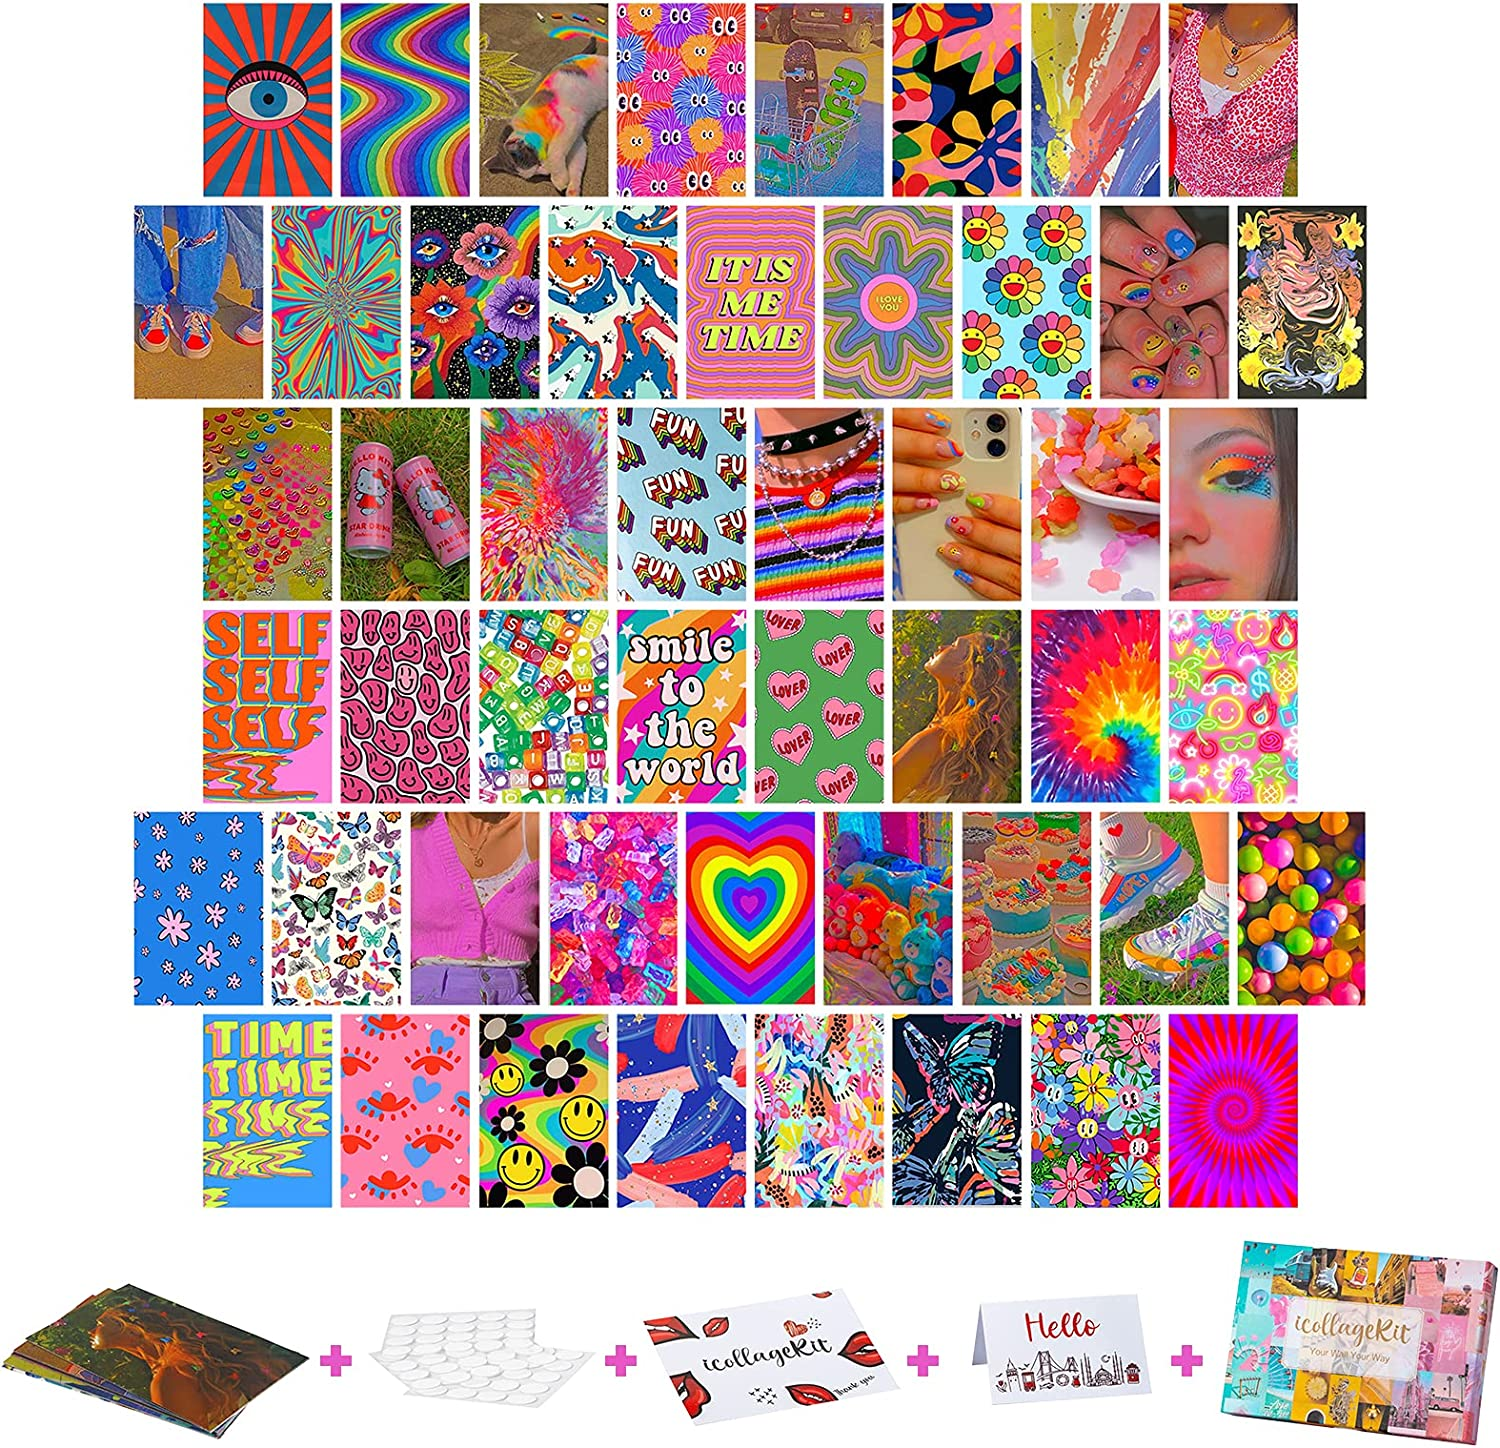 Wall Collage Kit Indie Aesthetic Pictures, 50PCS 4x6 Inch, UnityStar Aesthetic Wall Images Baddie Room Decor for Teen Girls Boys, Trippy Photo Wall Collage Kit for Bedroom